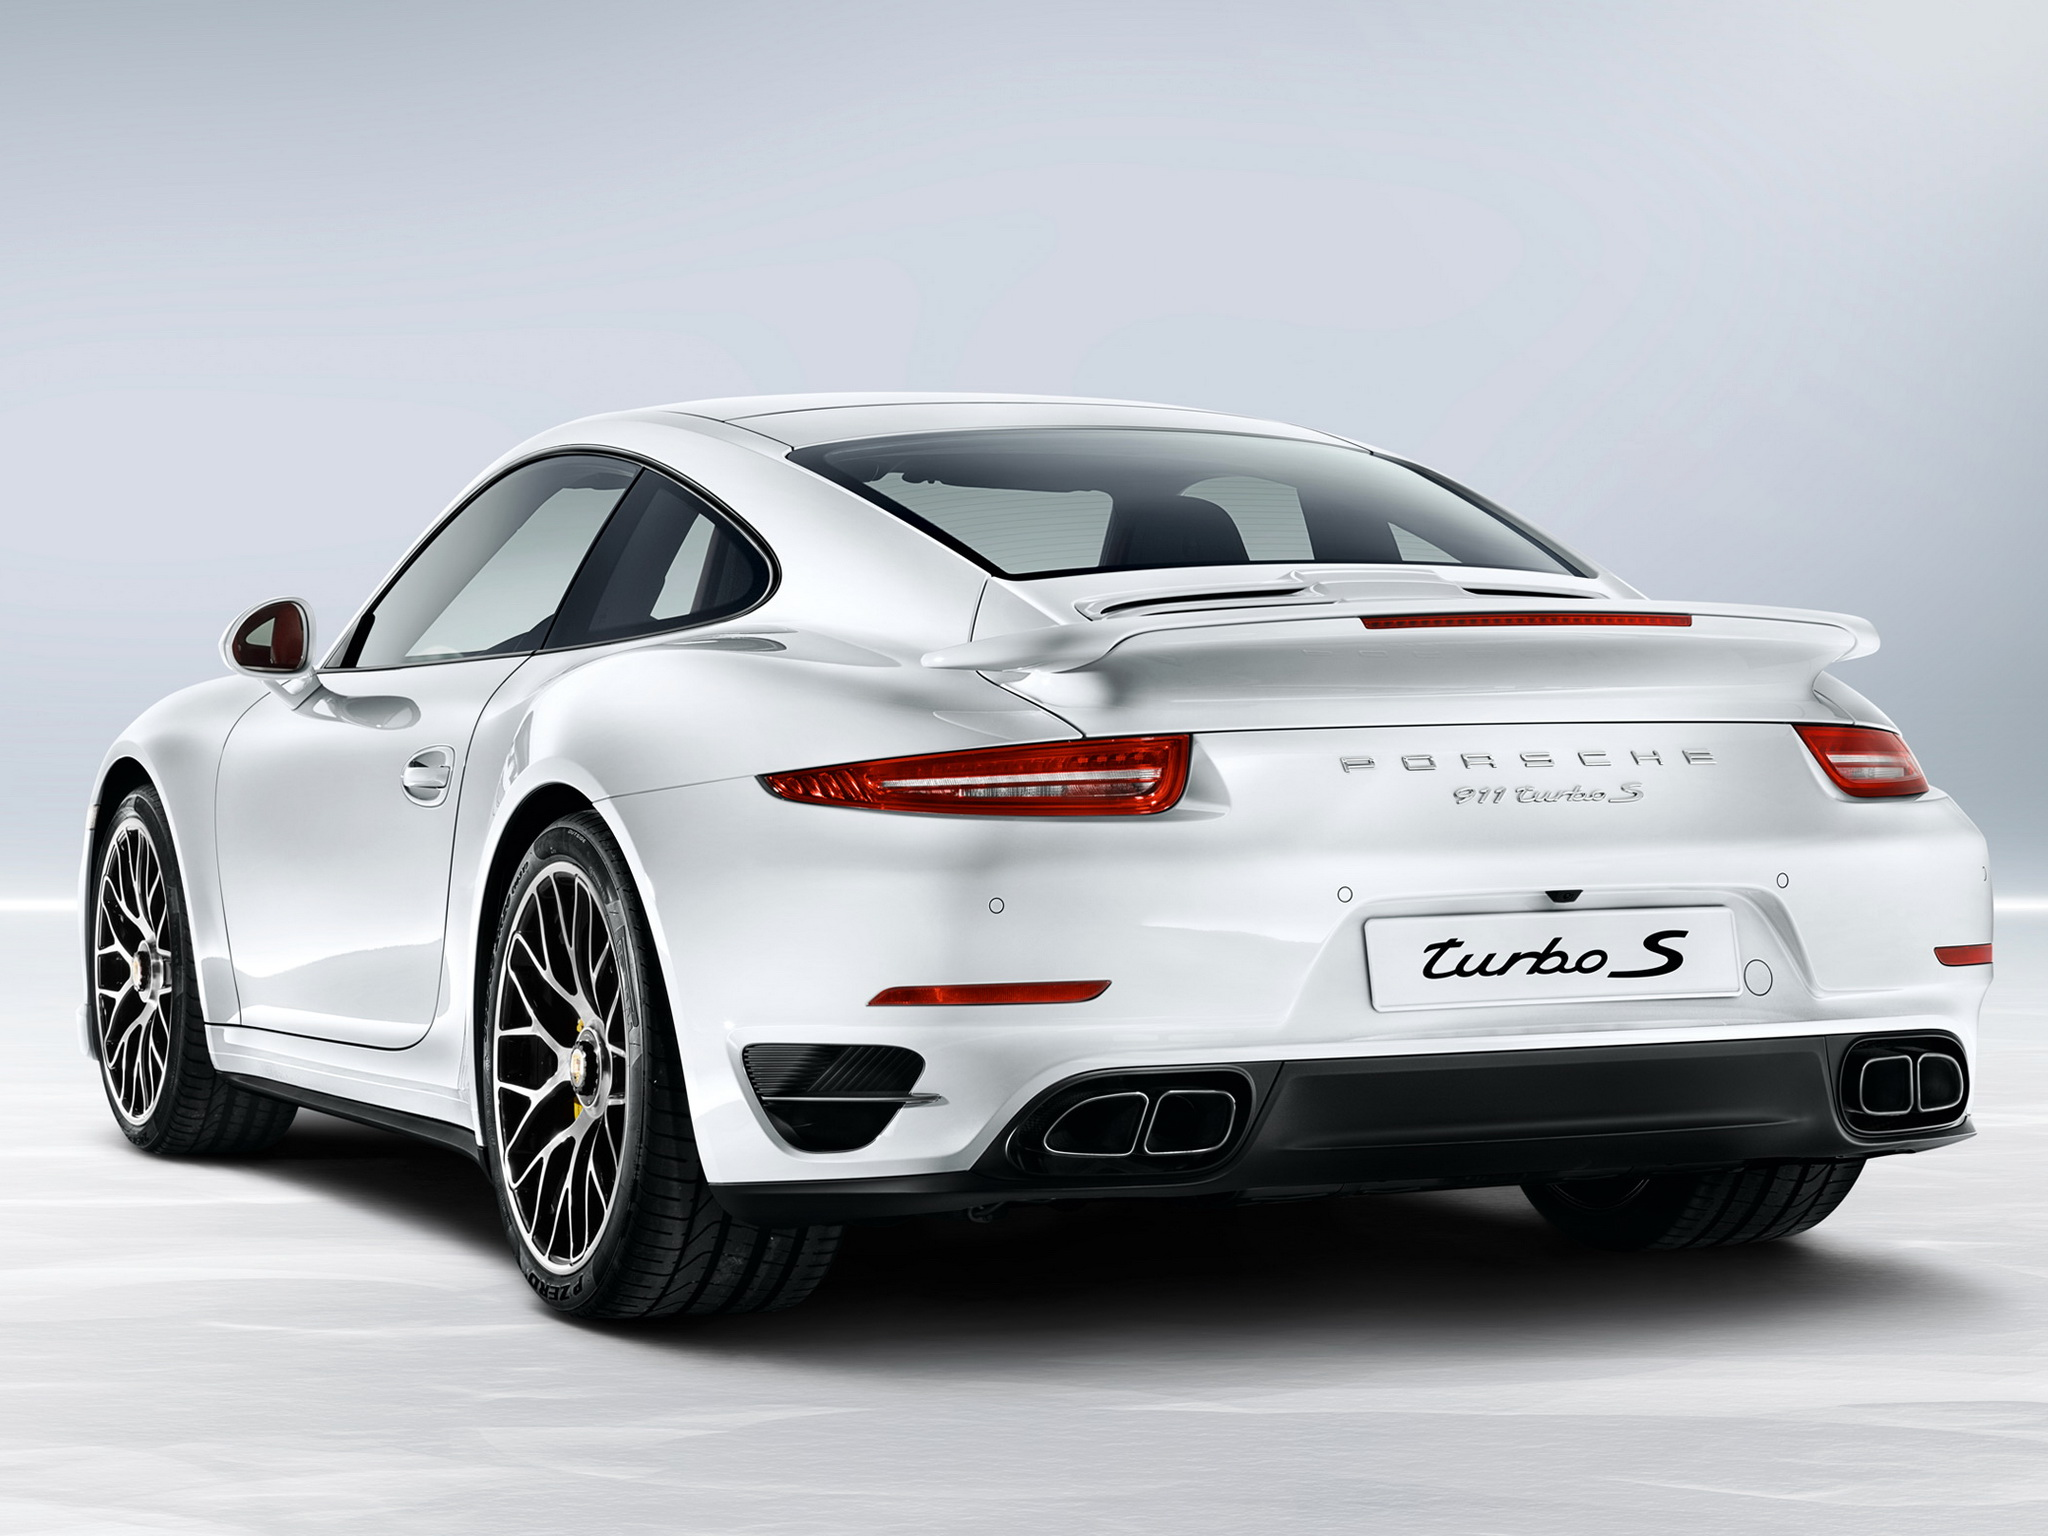 2013 porsche 911 turbo s 991 he wallpaper 2048x1536 141570 wallpaperup